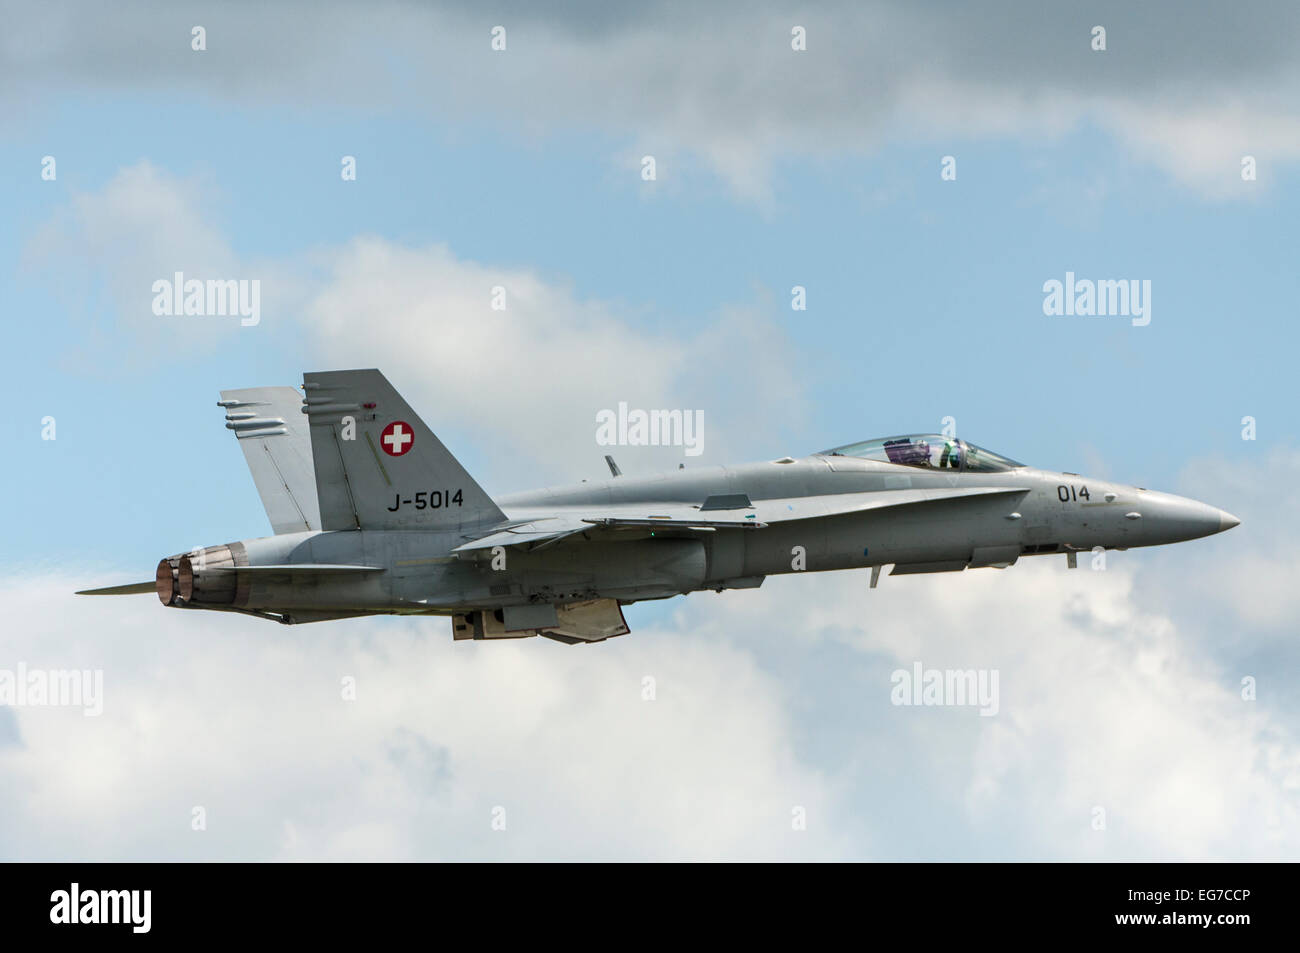 Swiss airforce F/A - 18C Hornet in cloudy sky - Stock Image